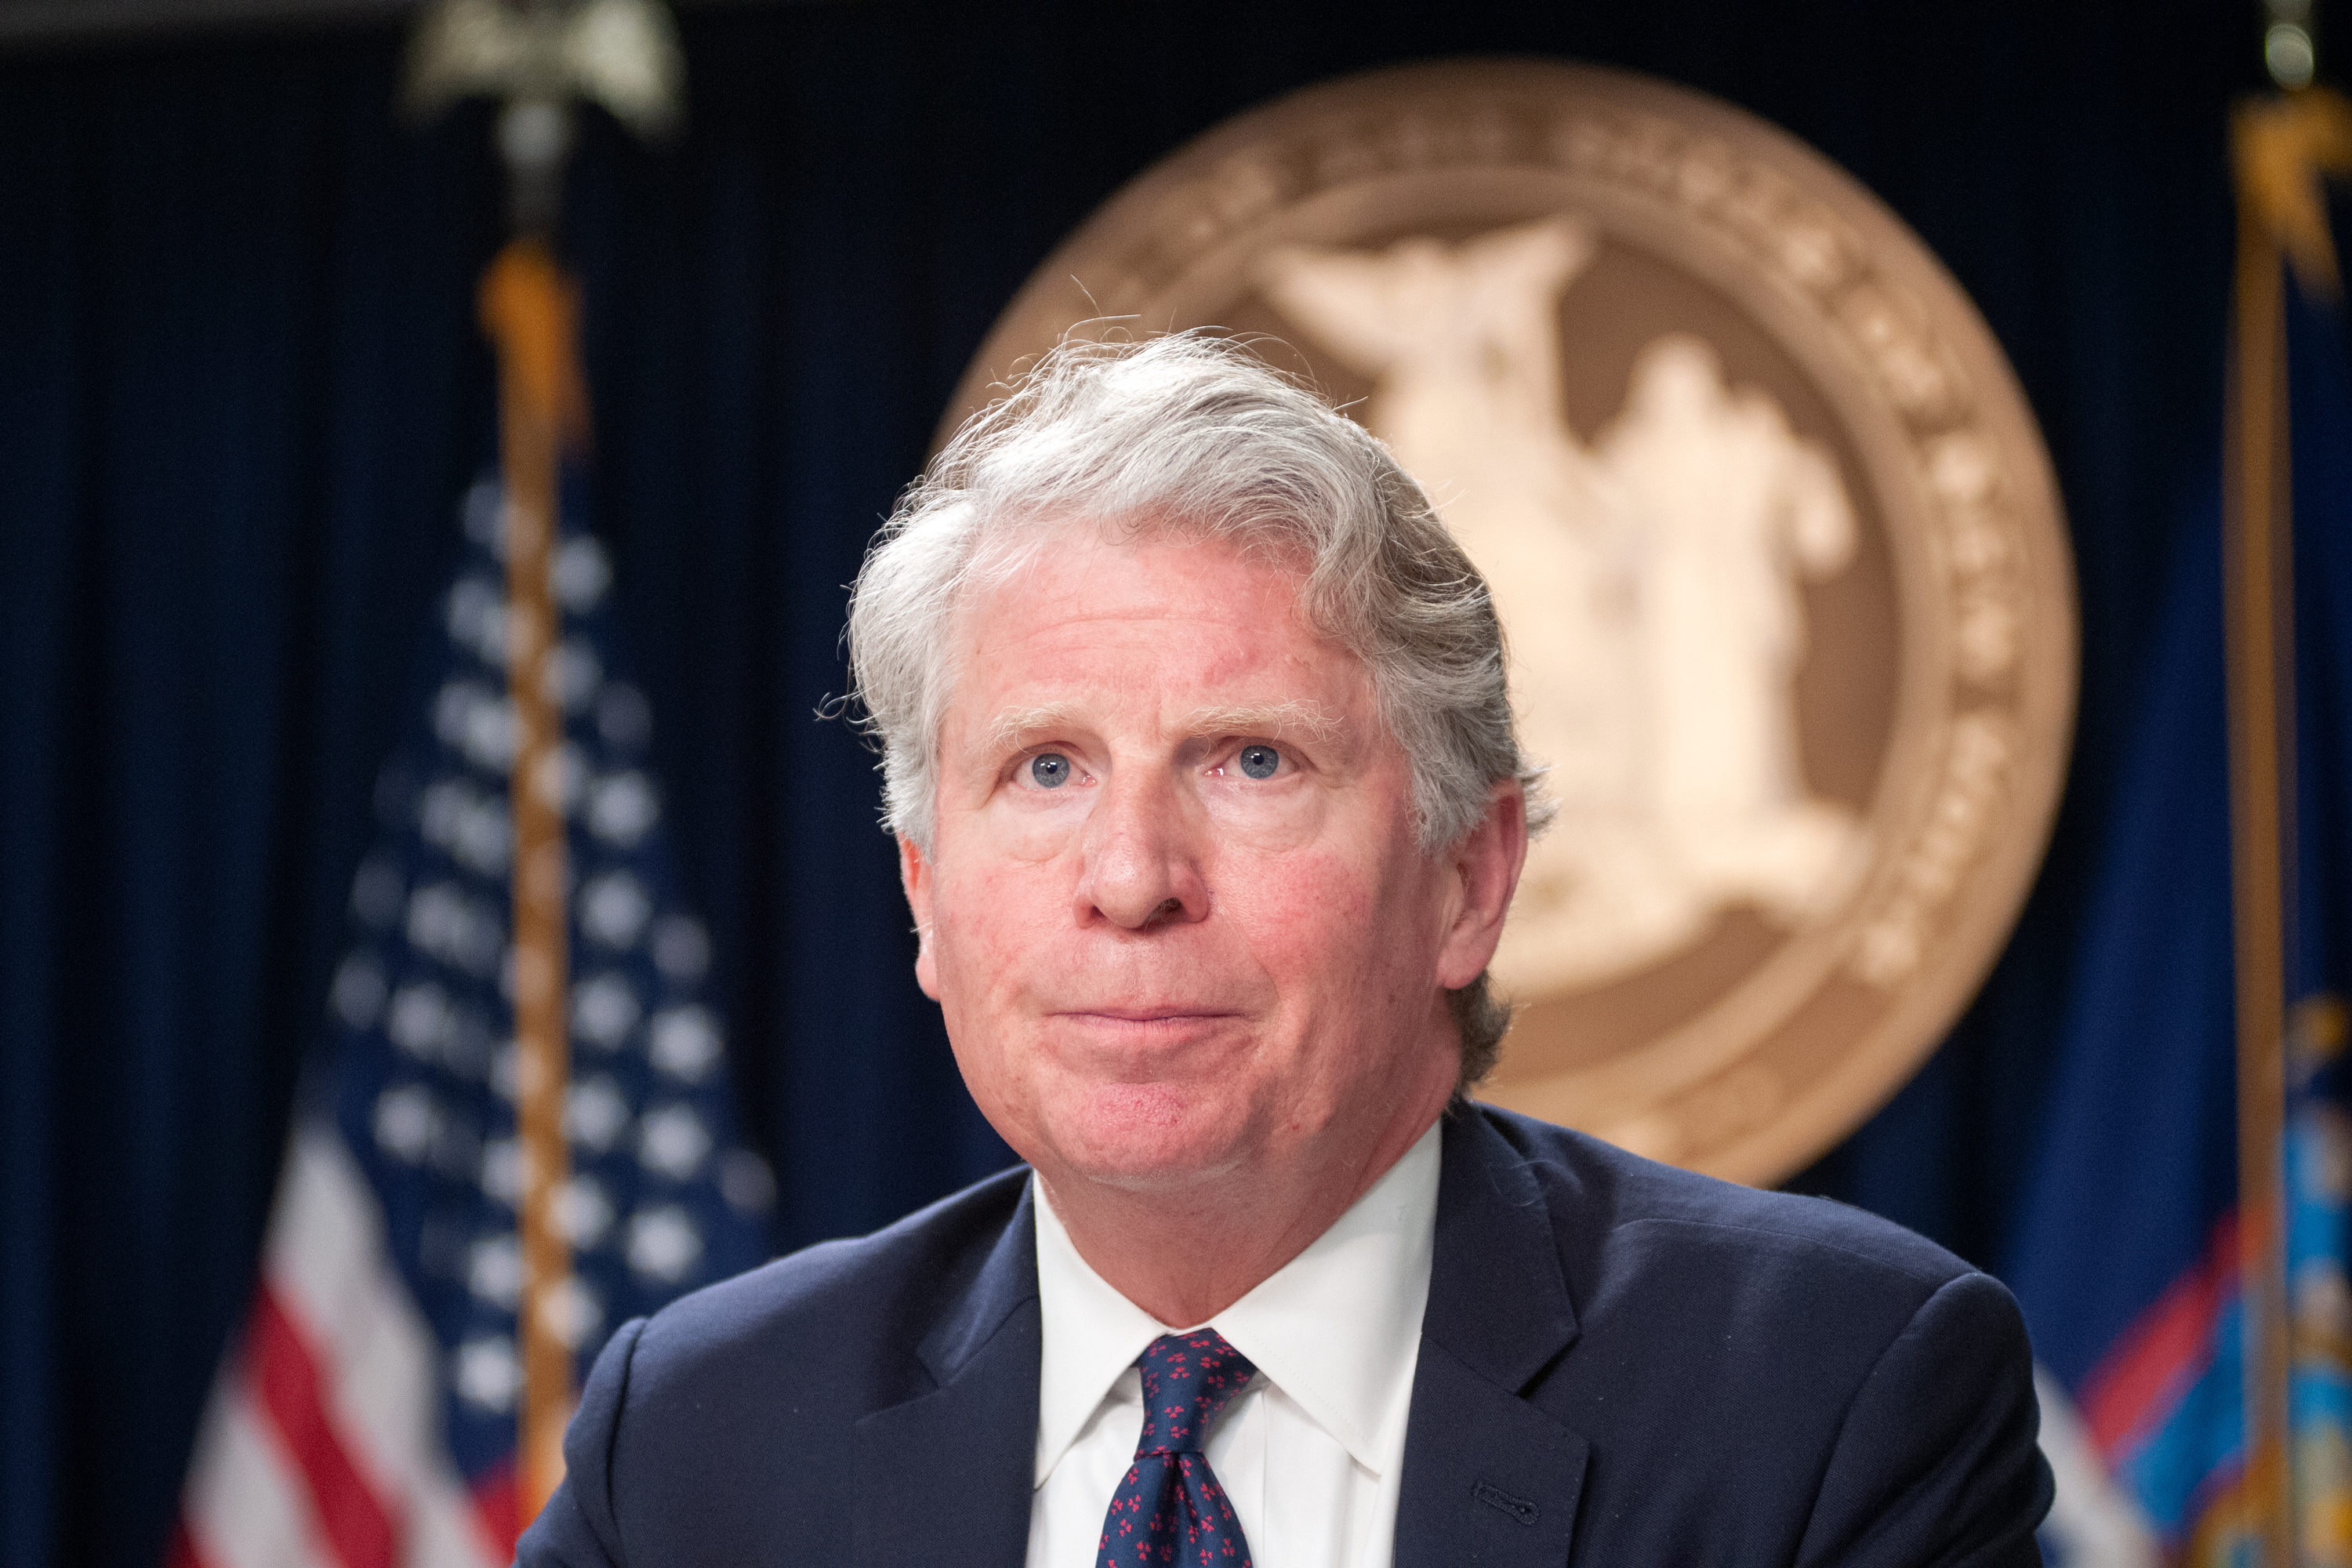 Manhattan District Attorney Cyrus Vance Jr. attends a press conference at Governor Andrew Cuomo's Midtown office, June 17, 2019.